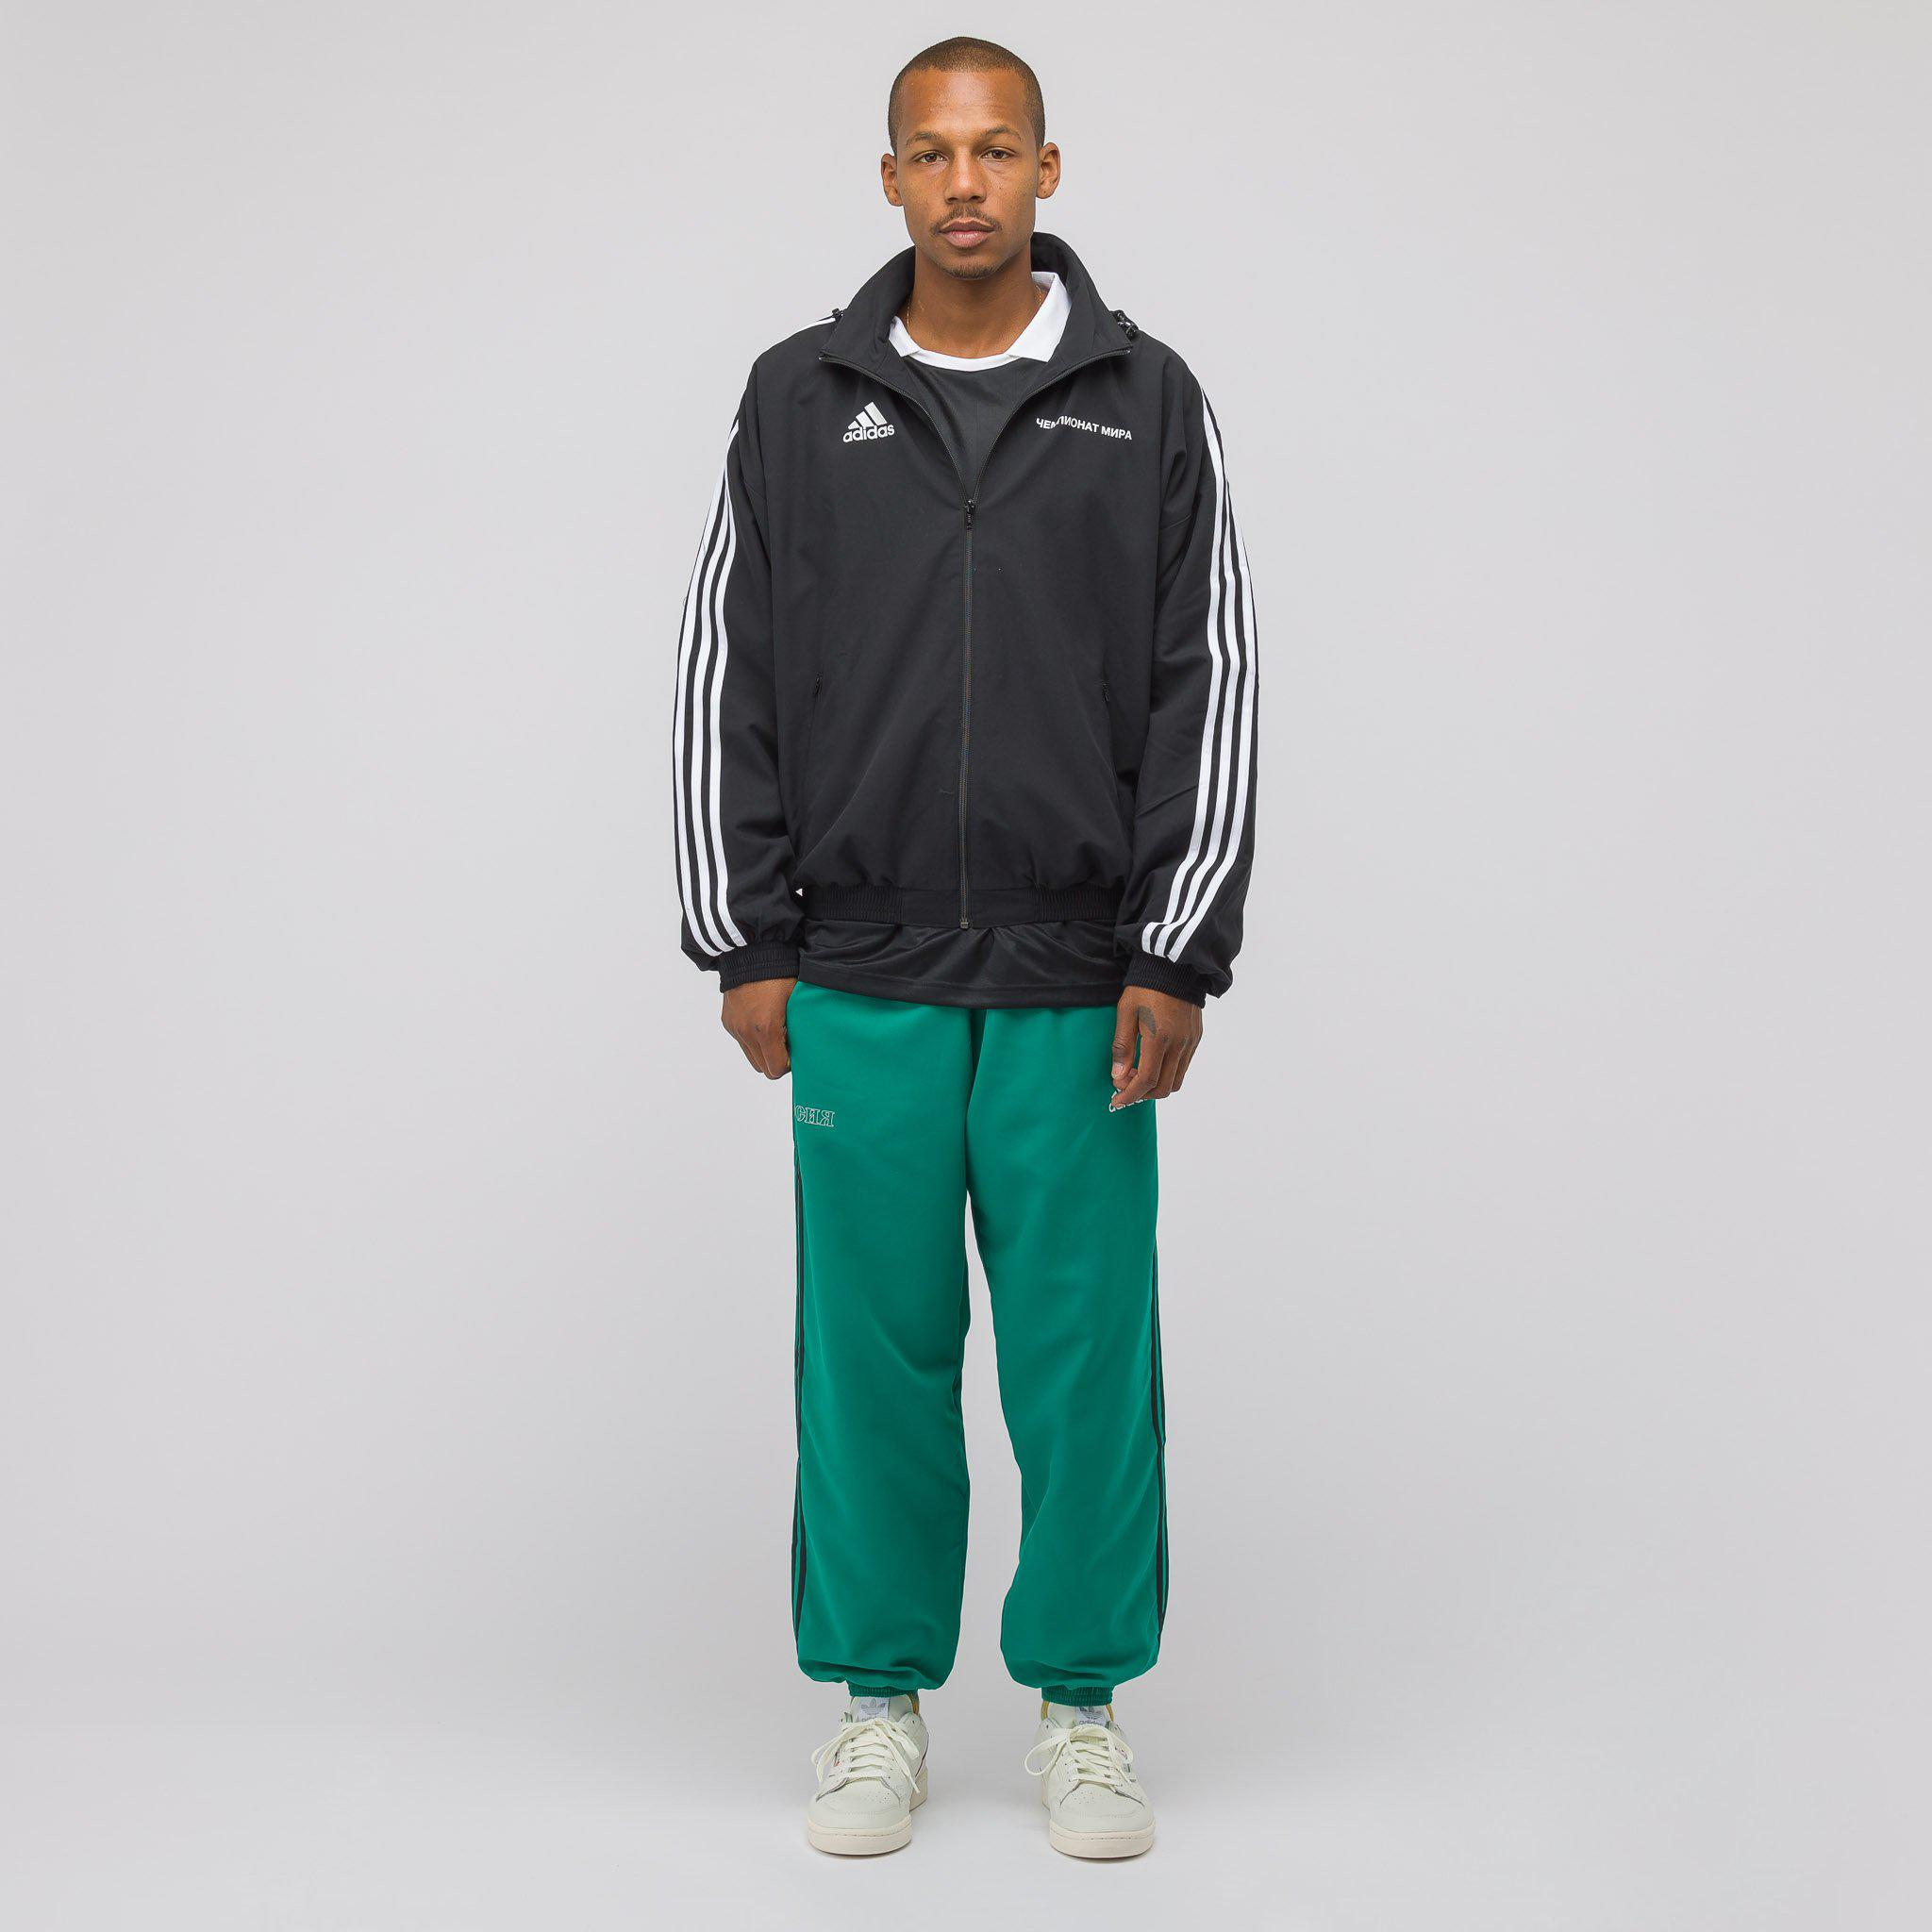 50% price best quality details for X Adidas Woven Jacket In Black